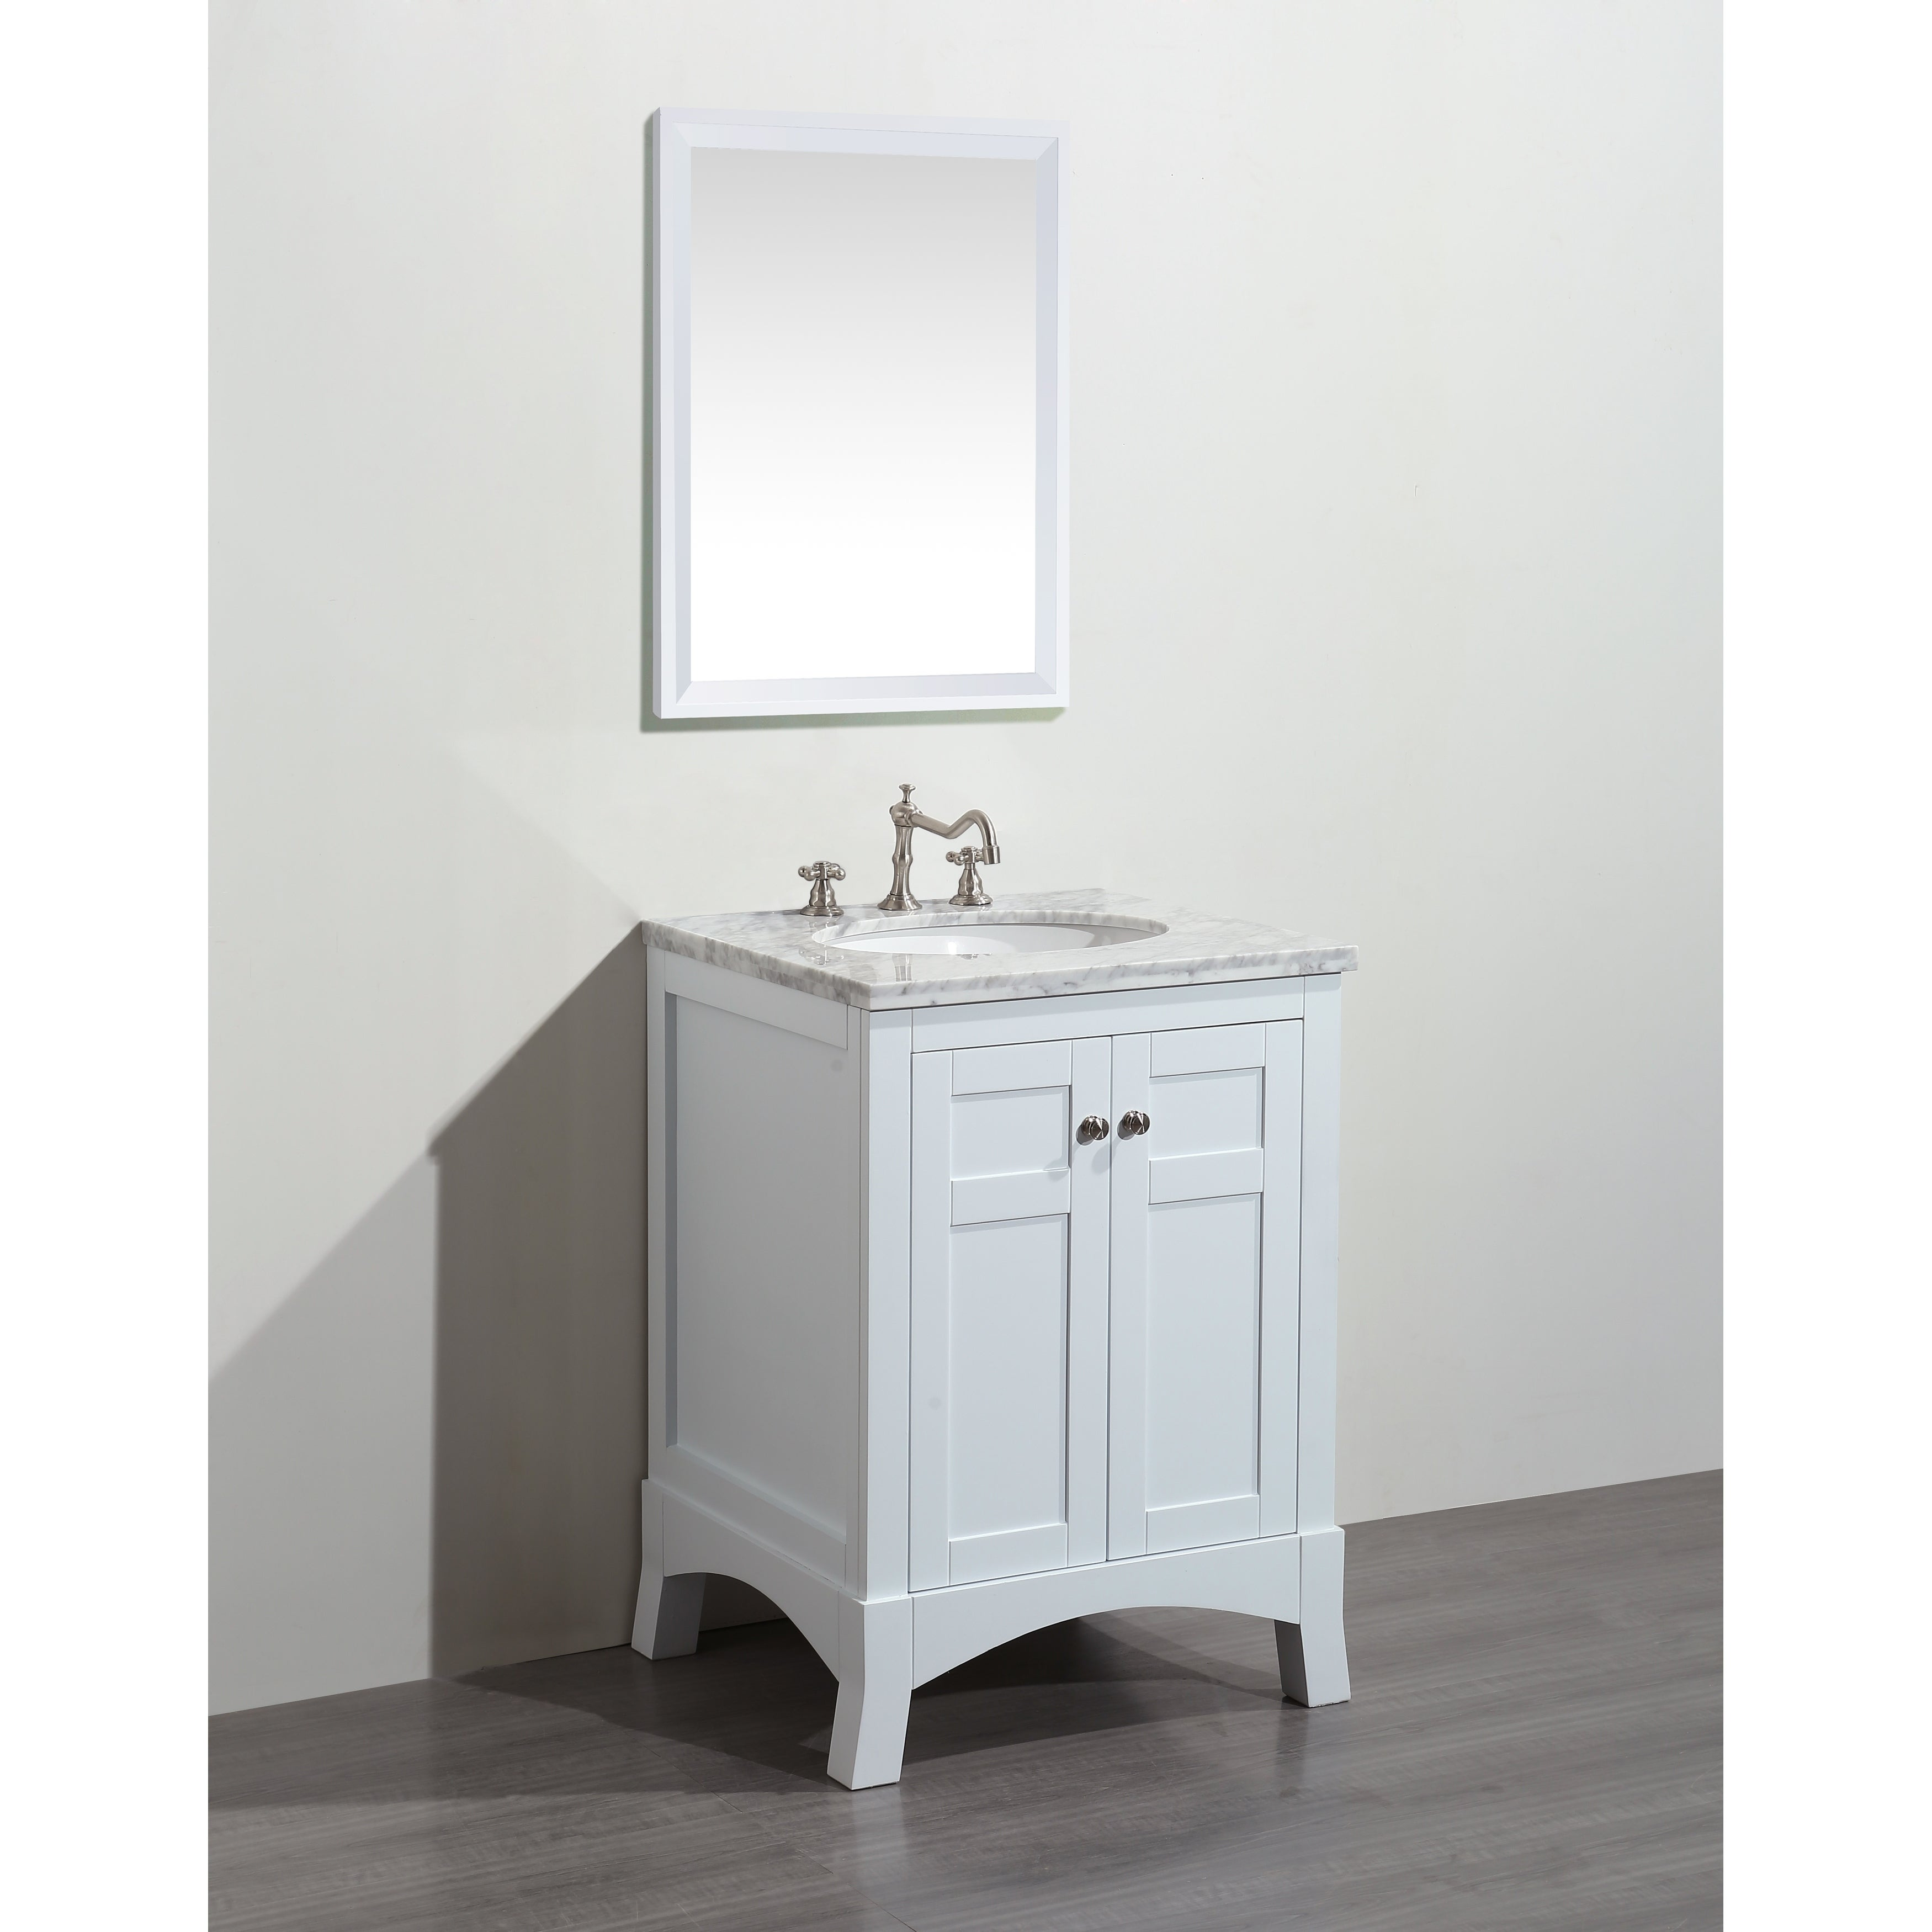 Eviva New York 24 Inch White Bathroom Vanity With Marble Carrera Countertop Sink